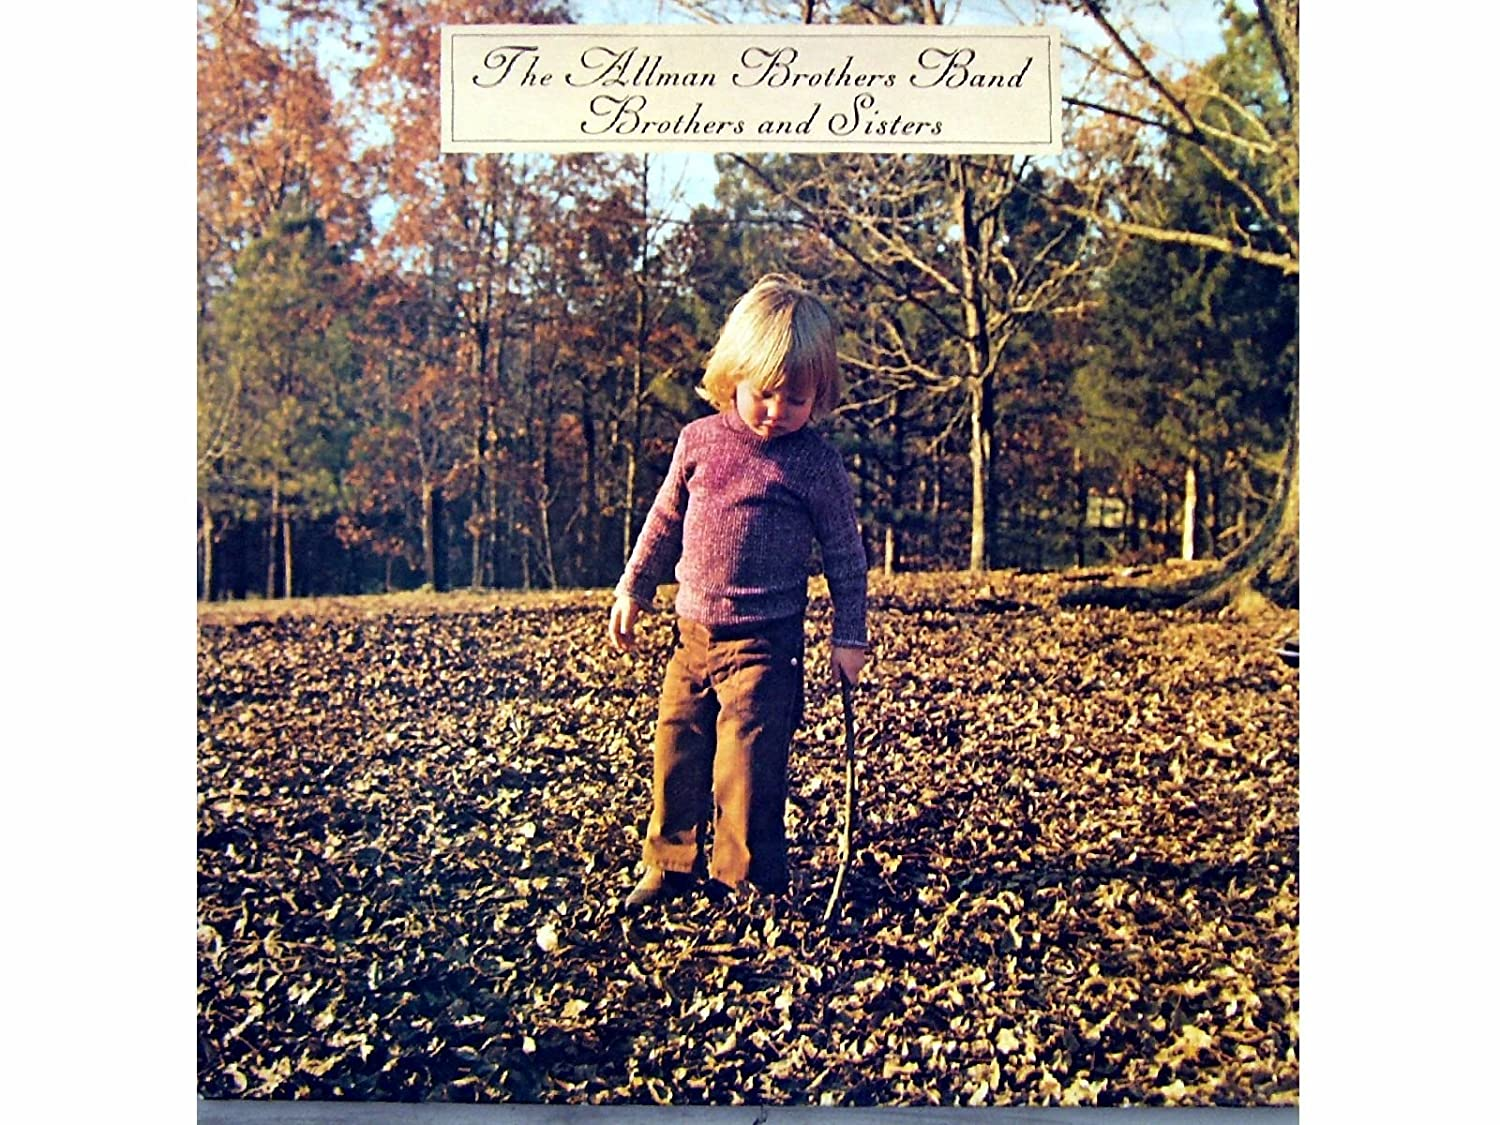 the allman brothers band brothers and sisters 40th anniversary super deluxe edition